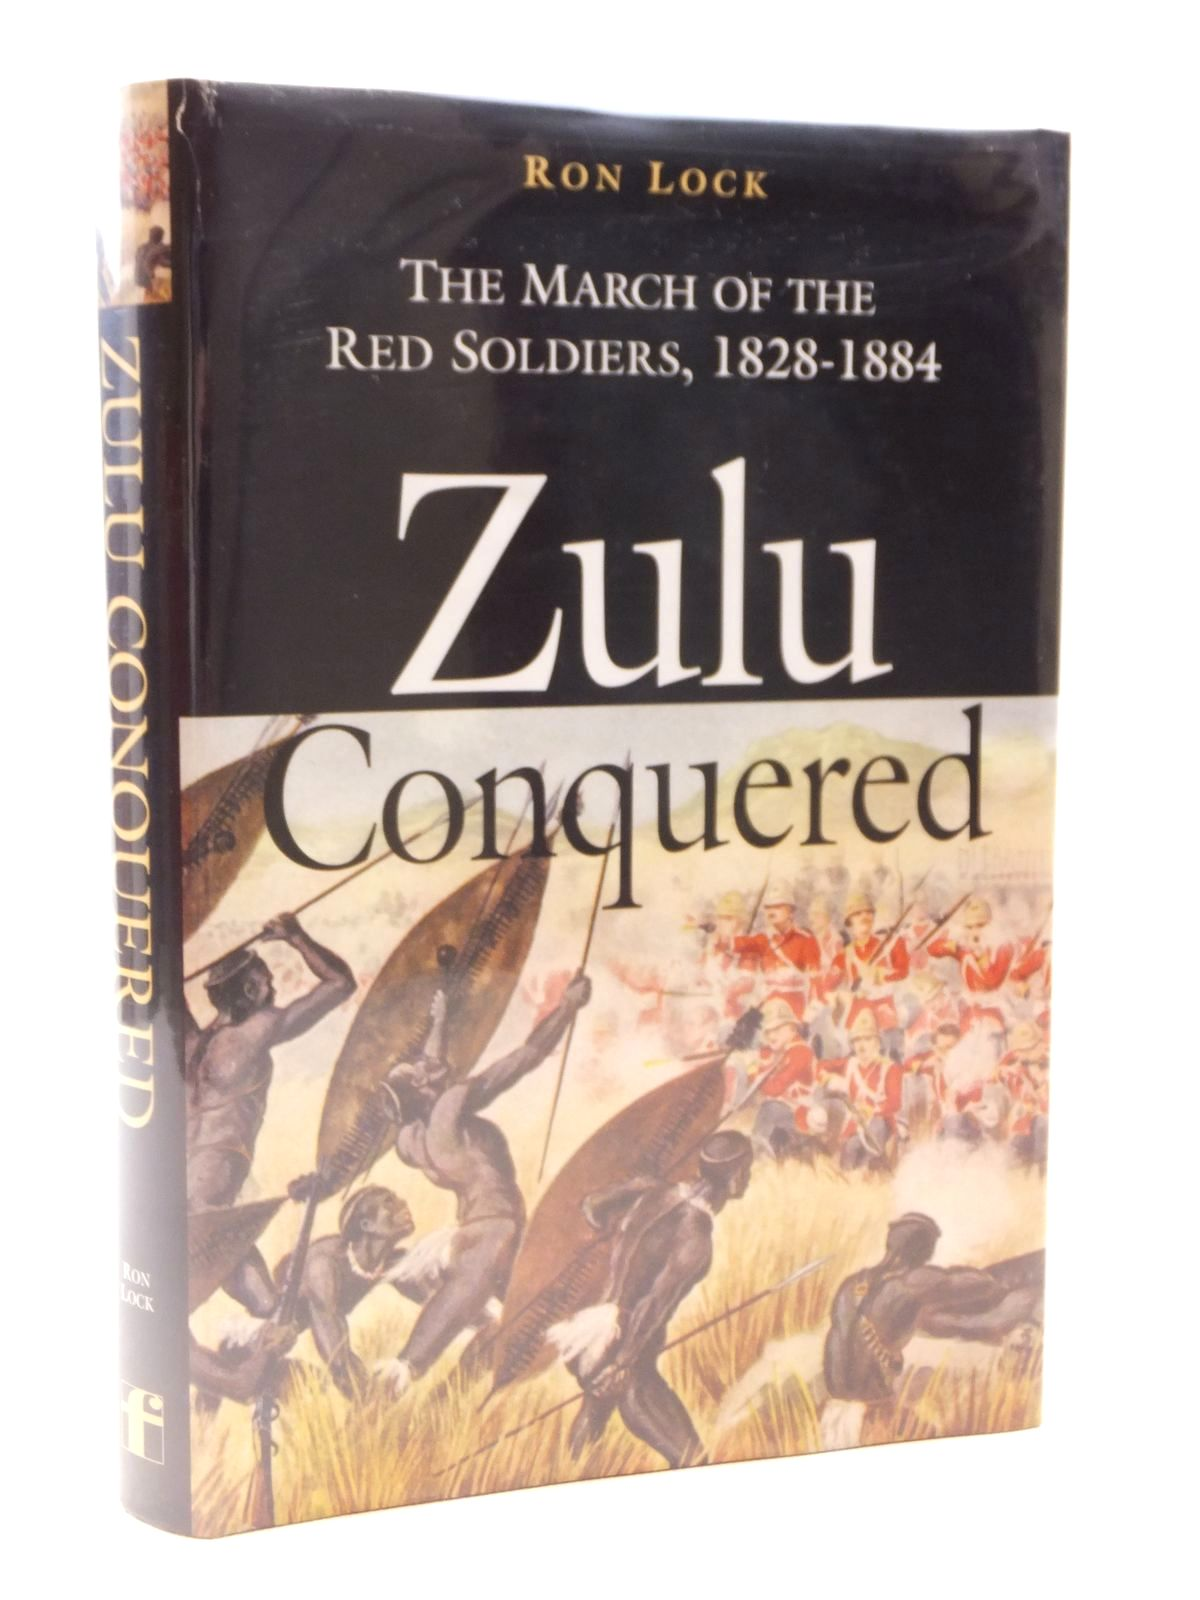 Photo of ZULU CONQUERED THE MARCH OF THE RED SOLDIERS 1828-1884 written by Lock, Ron published by Frontline Books (STOCK CODE: 1608898)  for sale by Stella & Rose's Books